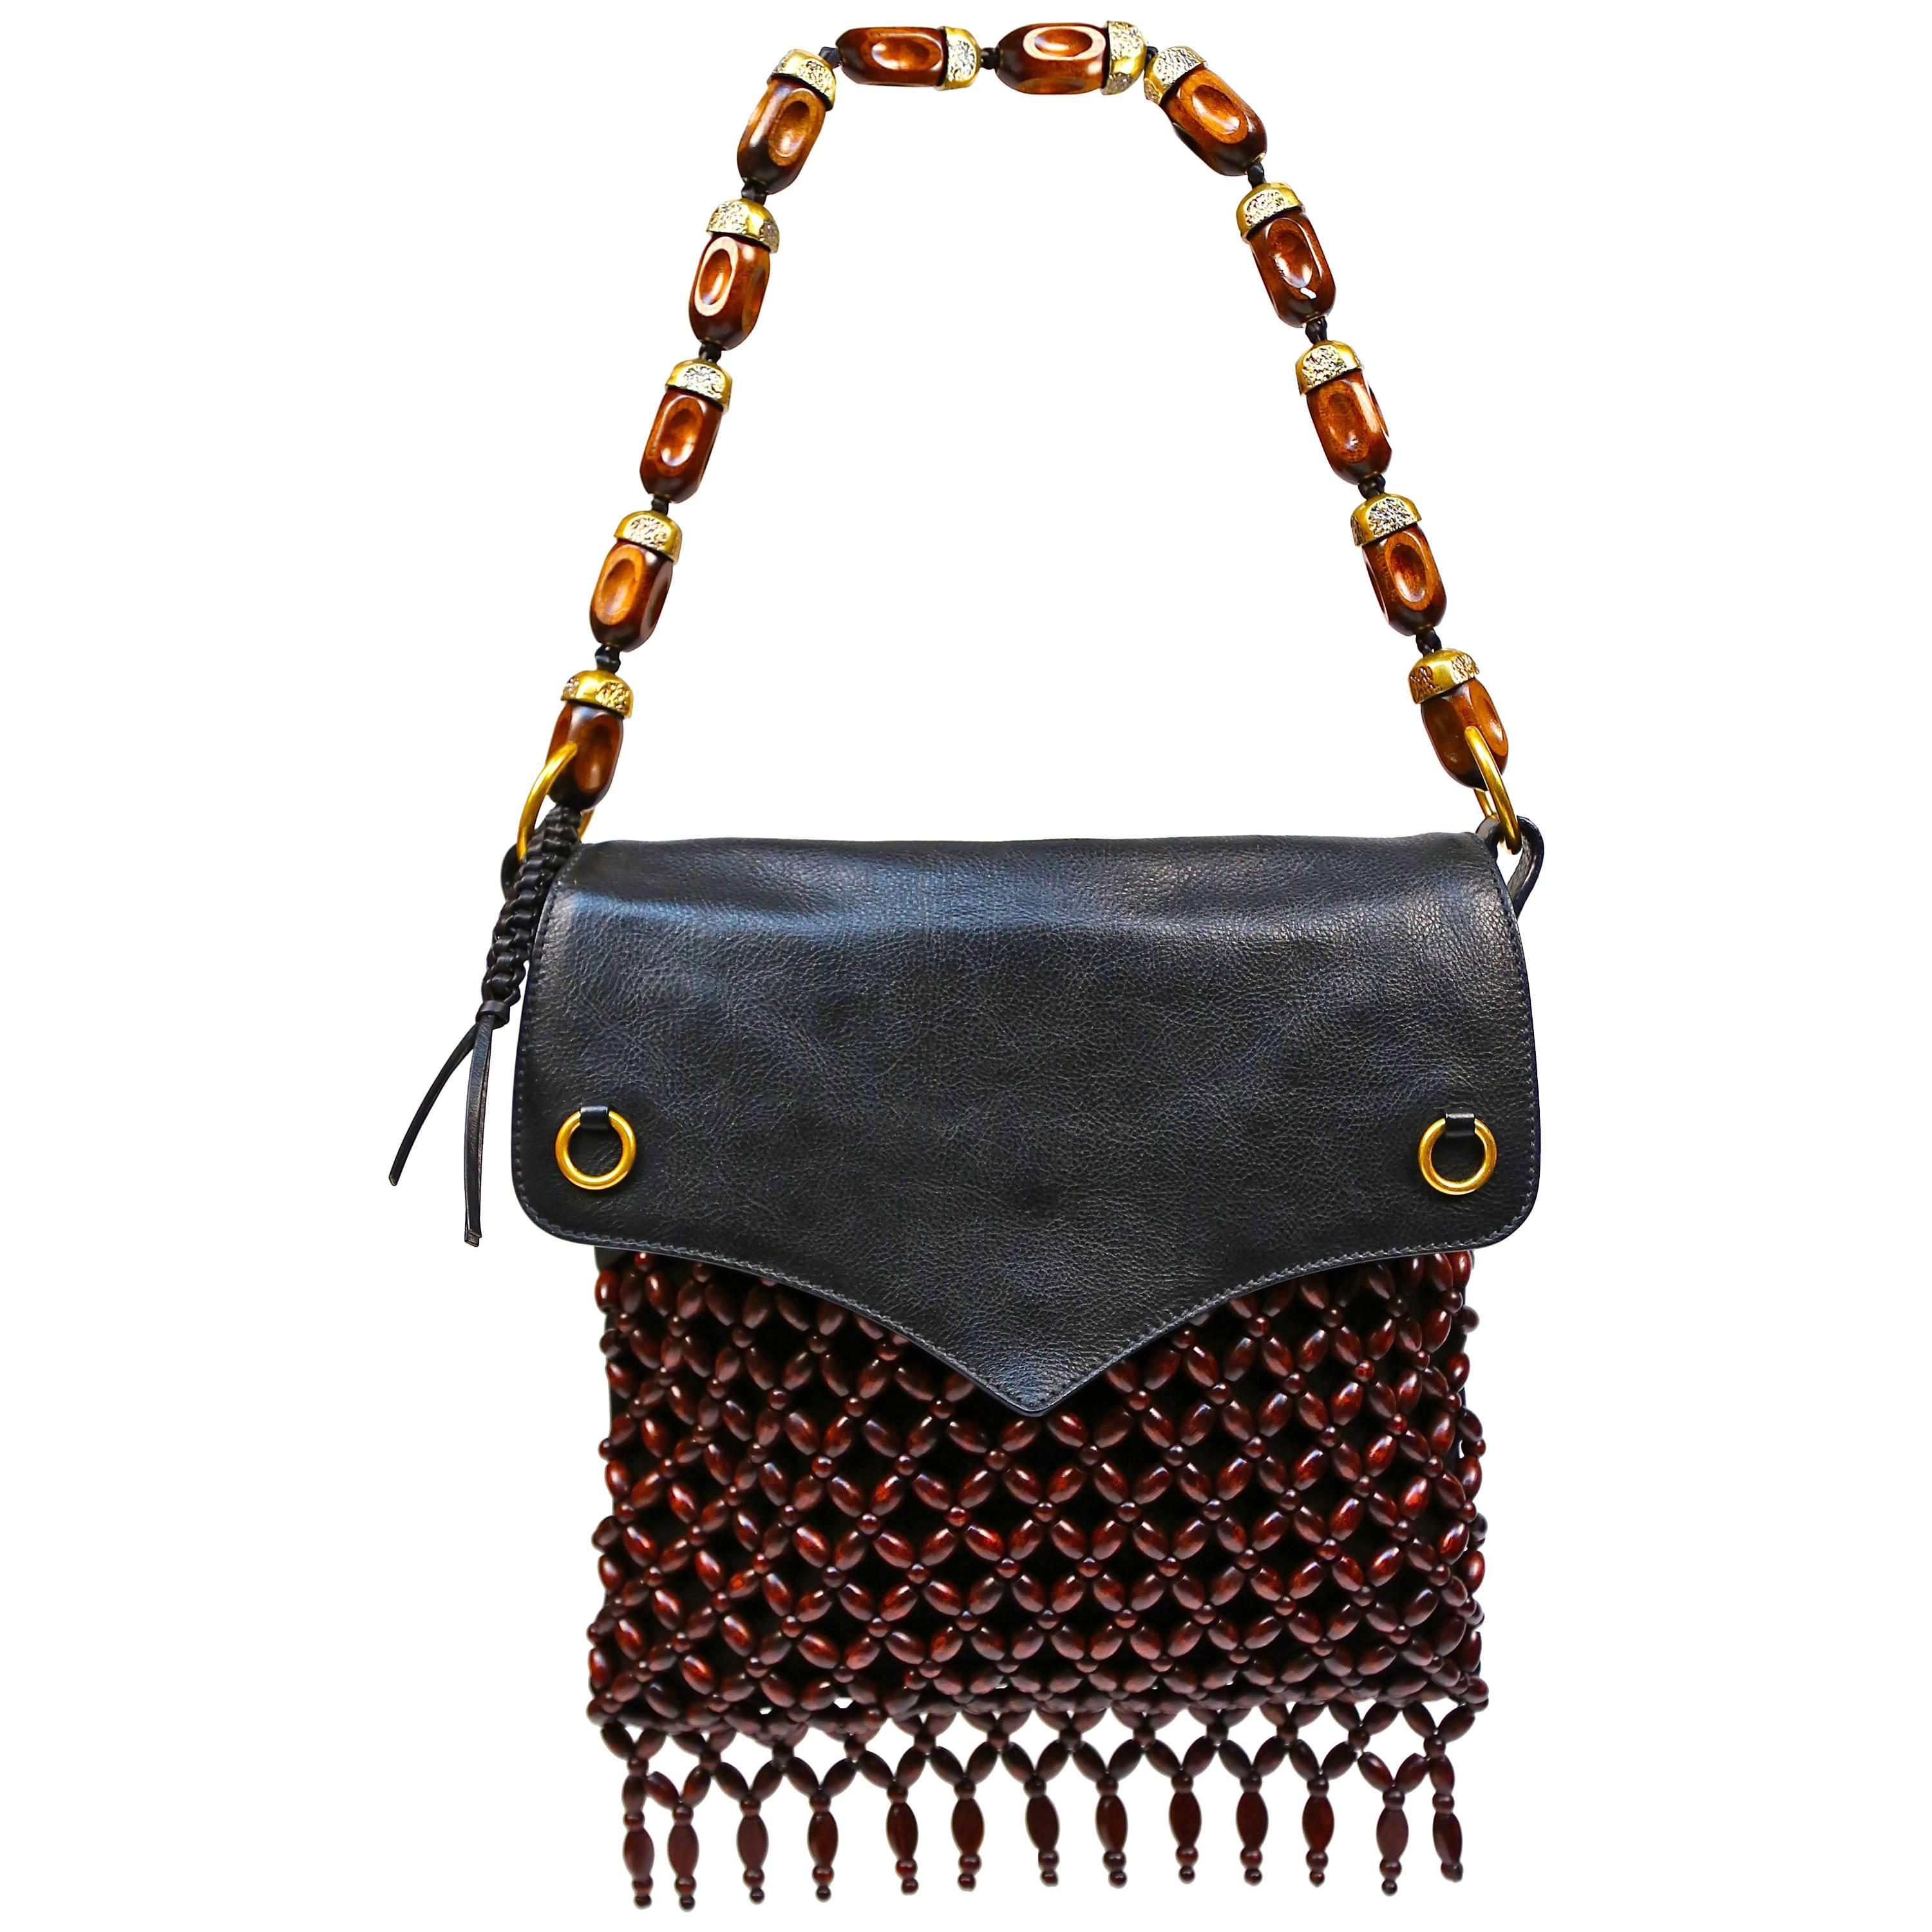 Yves Saint Laurent black suede and leather bag with fringed wood beading